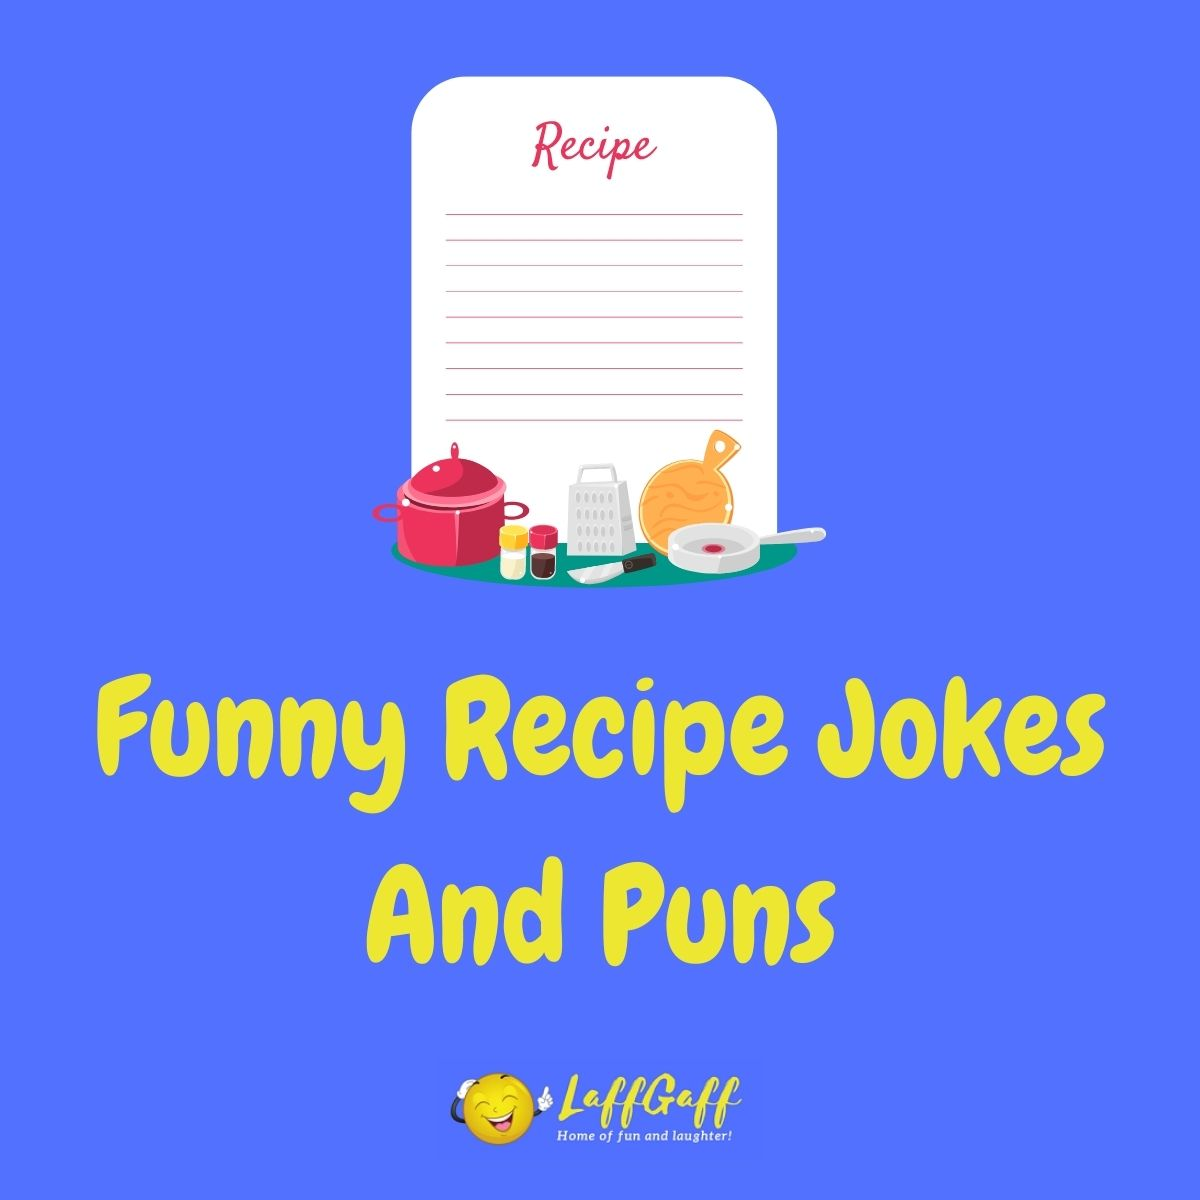 Featured image for a page of funny recipe jokes and puns.